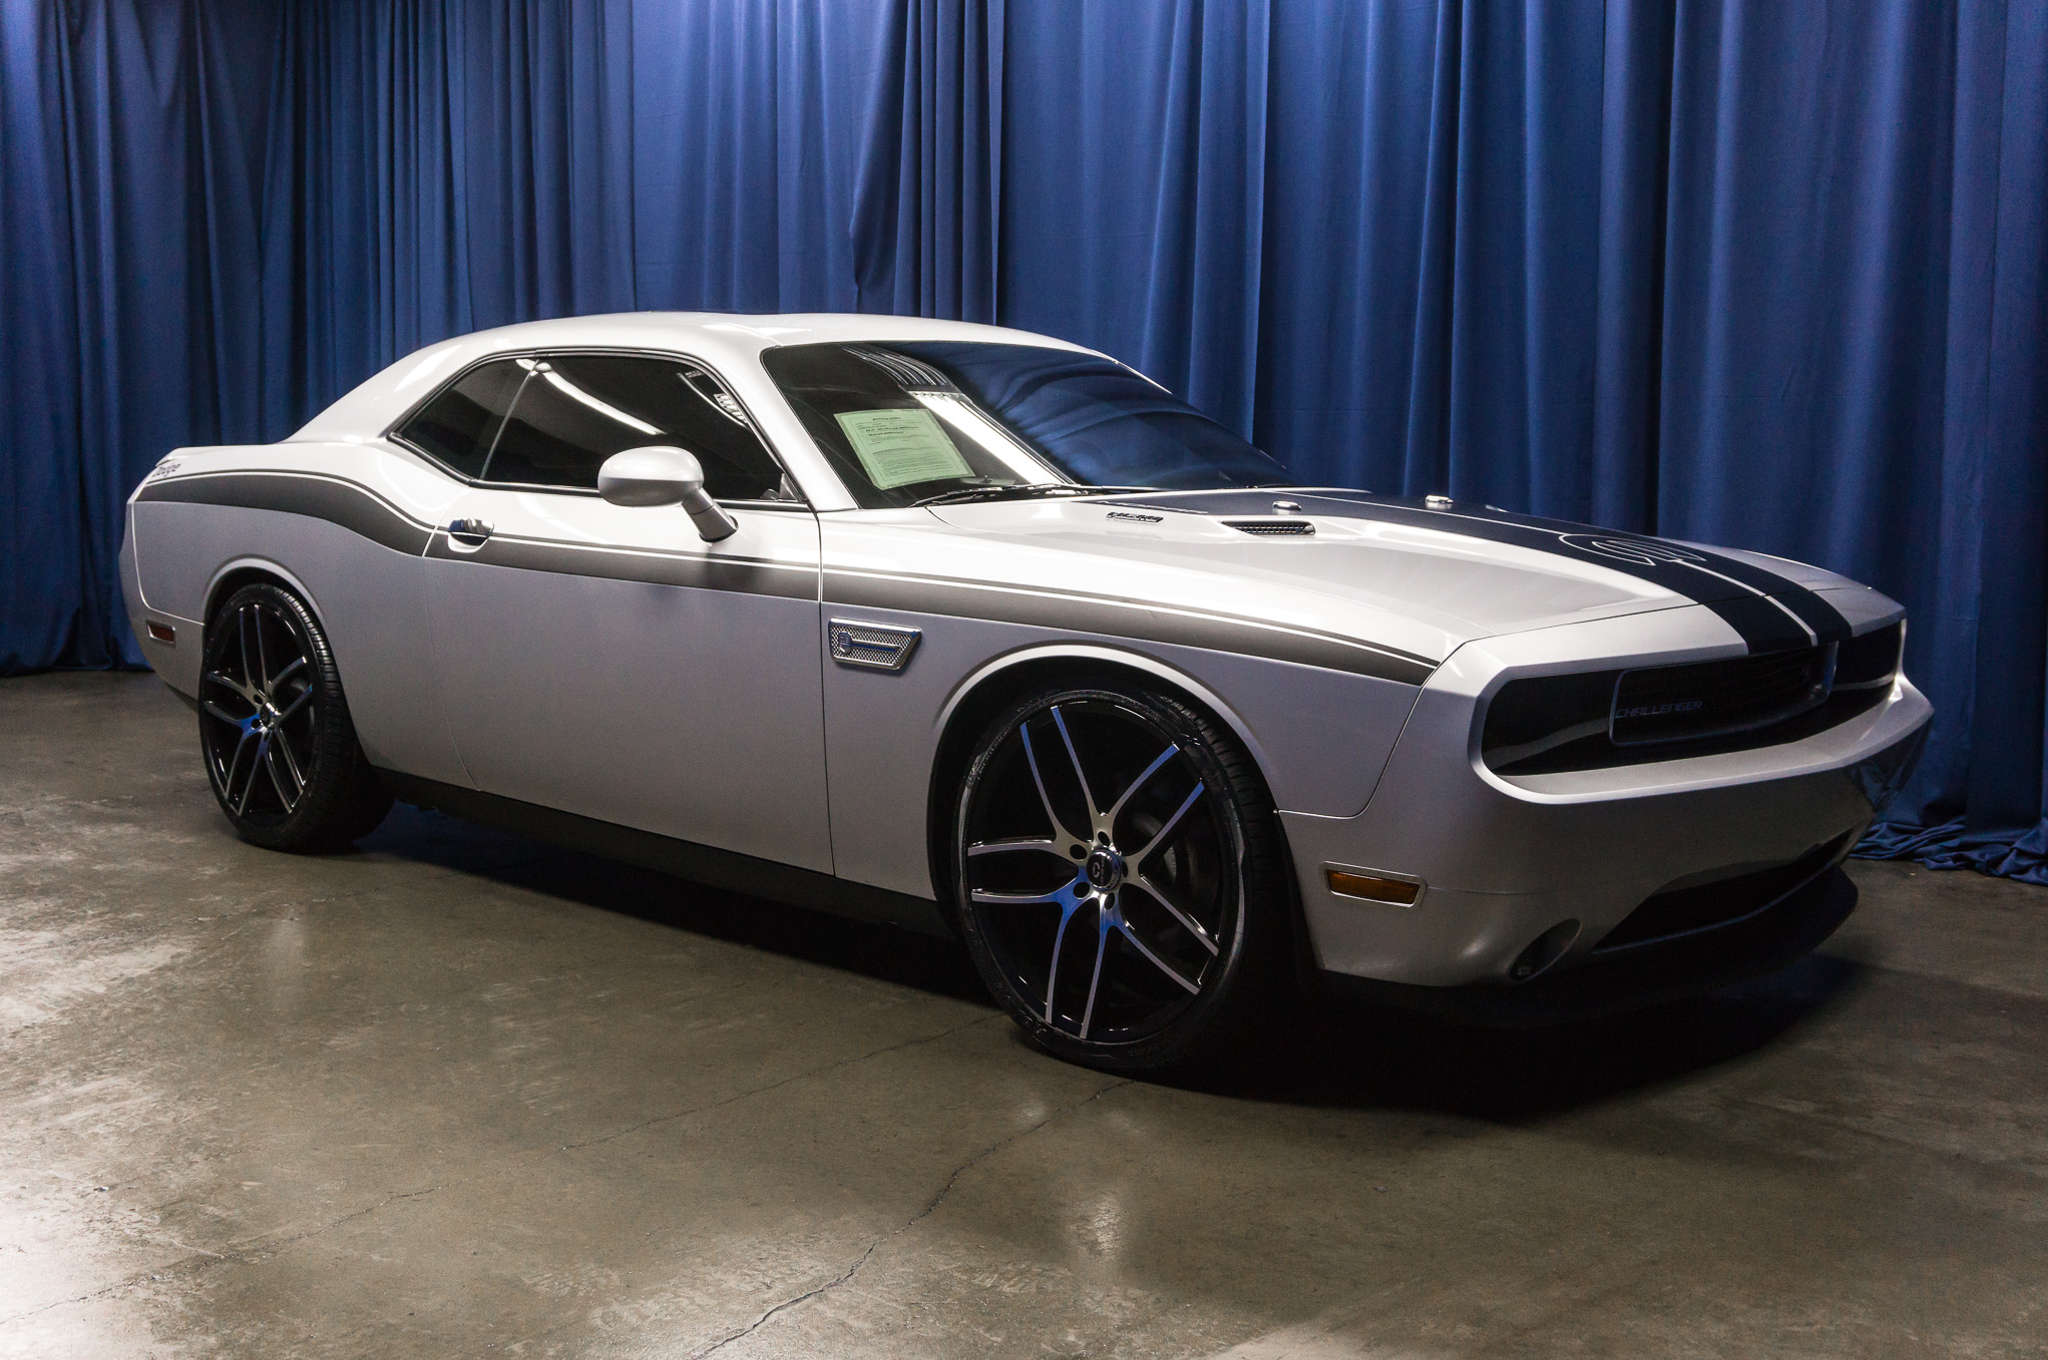 cars coupe rt sale in fine west t carsforsale palm r used for stock dodge florida challenger fl